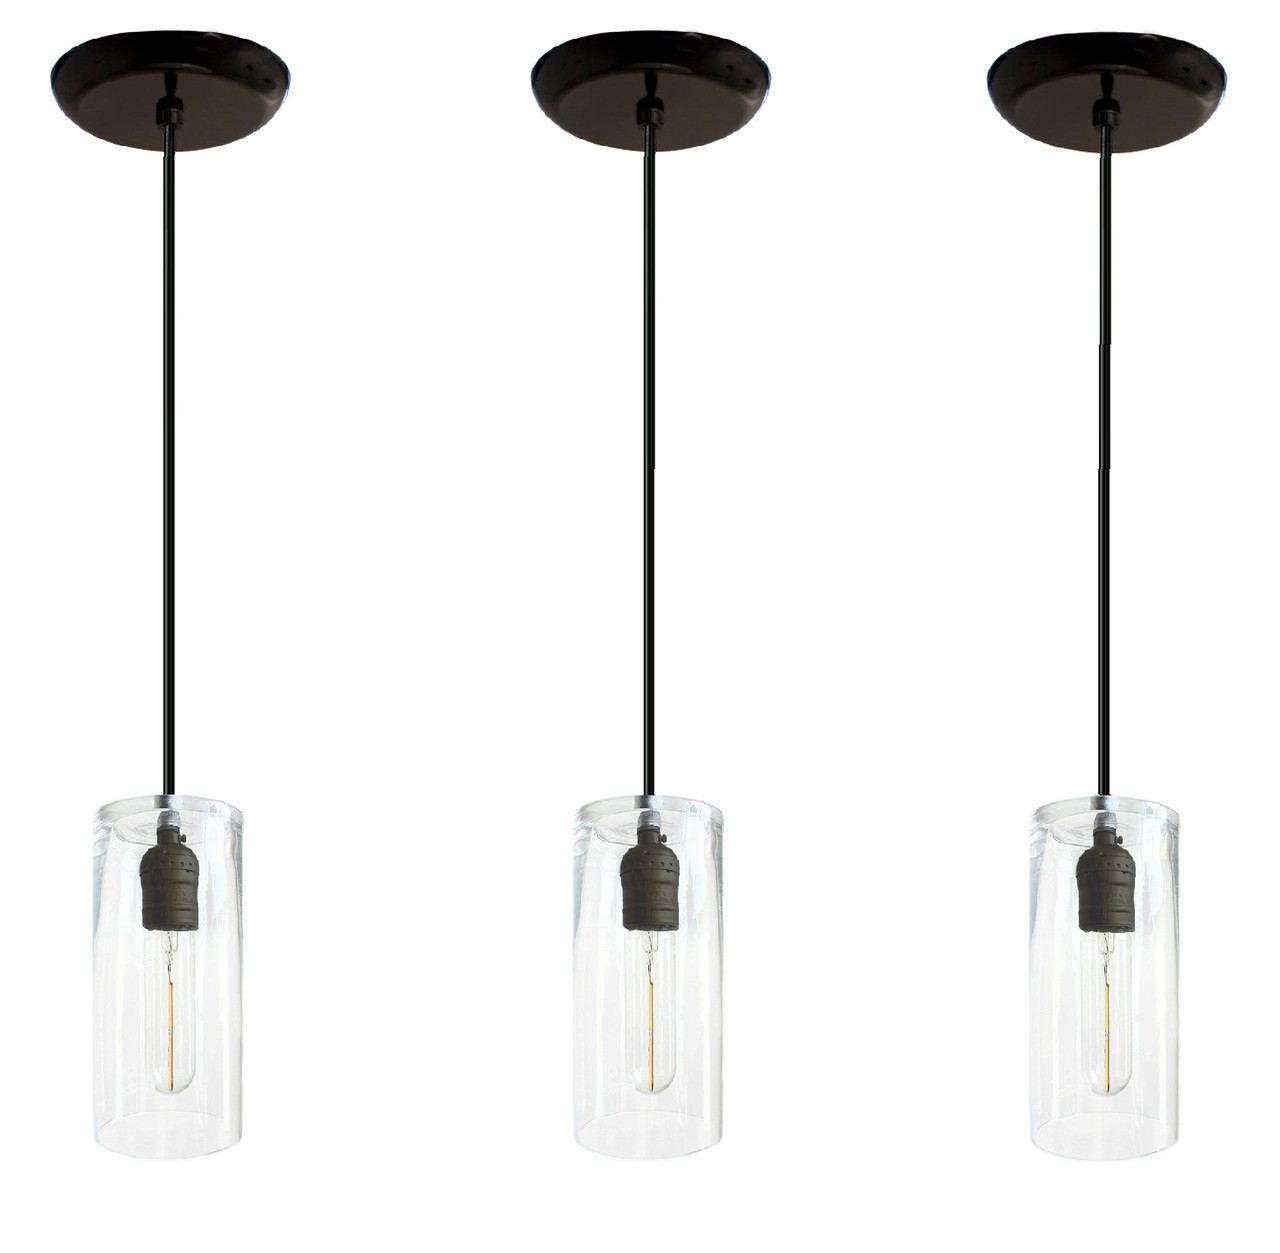 Remarkable Set Of 3 Black Hanging Modern Industrial Pendant Lights Pipe Lighting Edison Bulbs Electric Light Fixture Steel Lighting Interior Design Ideas Truasarkarijobsexamcom